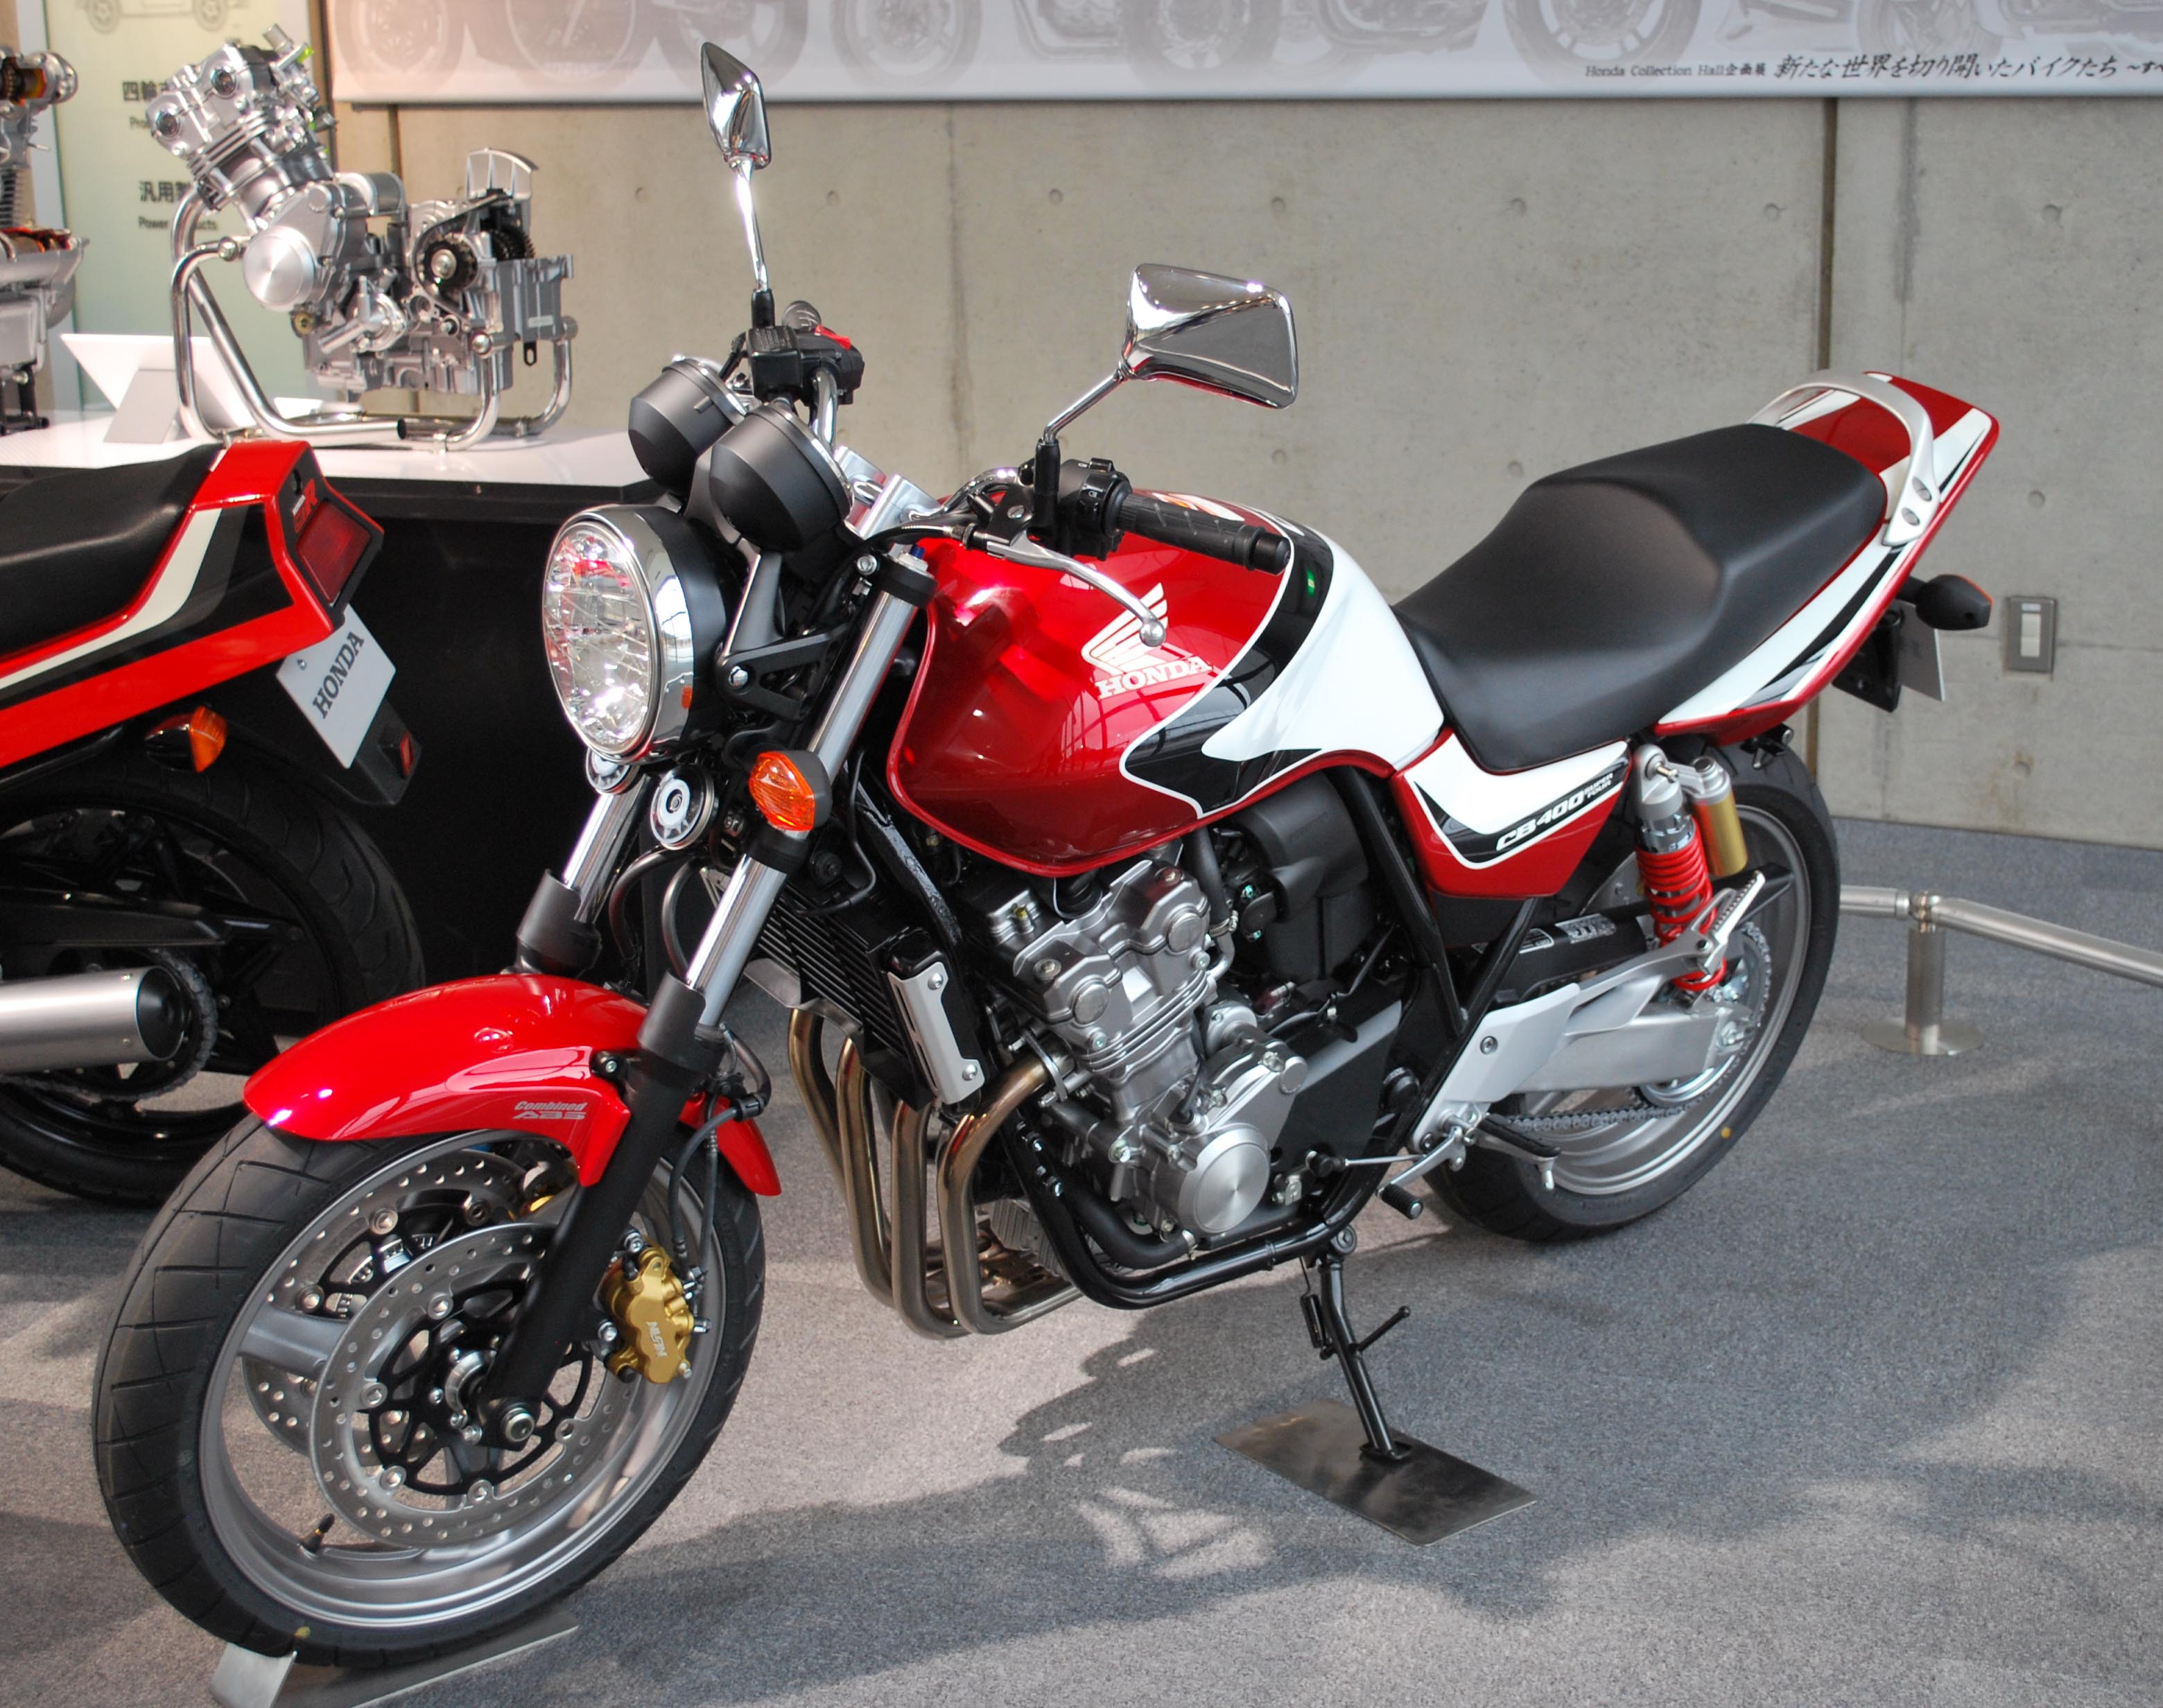 File:Honda CB400 Super four.jpg - Wikimedia Commons